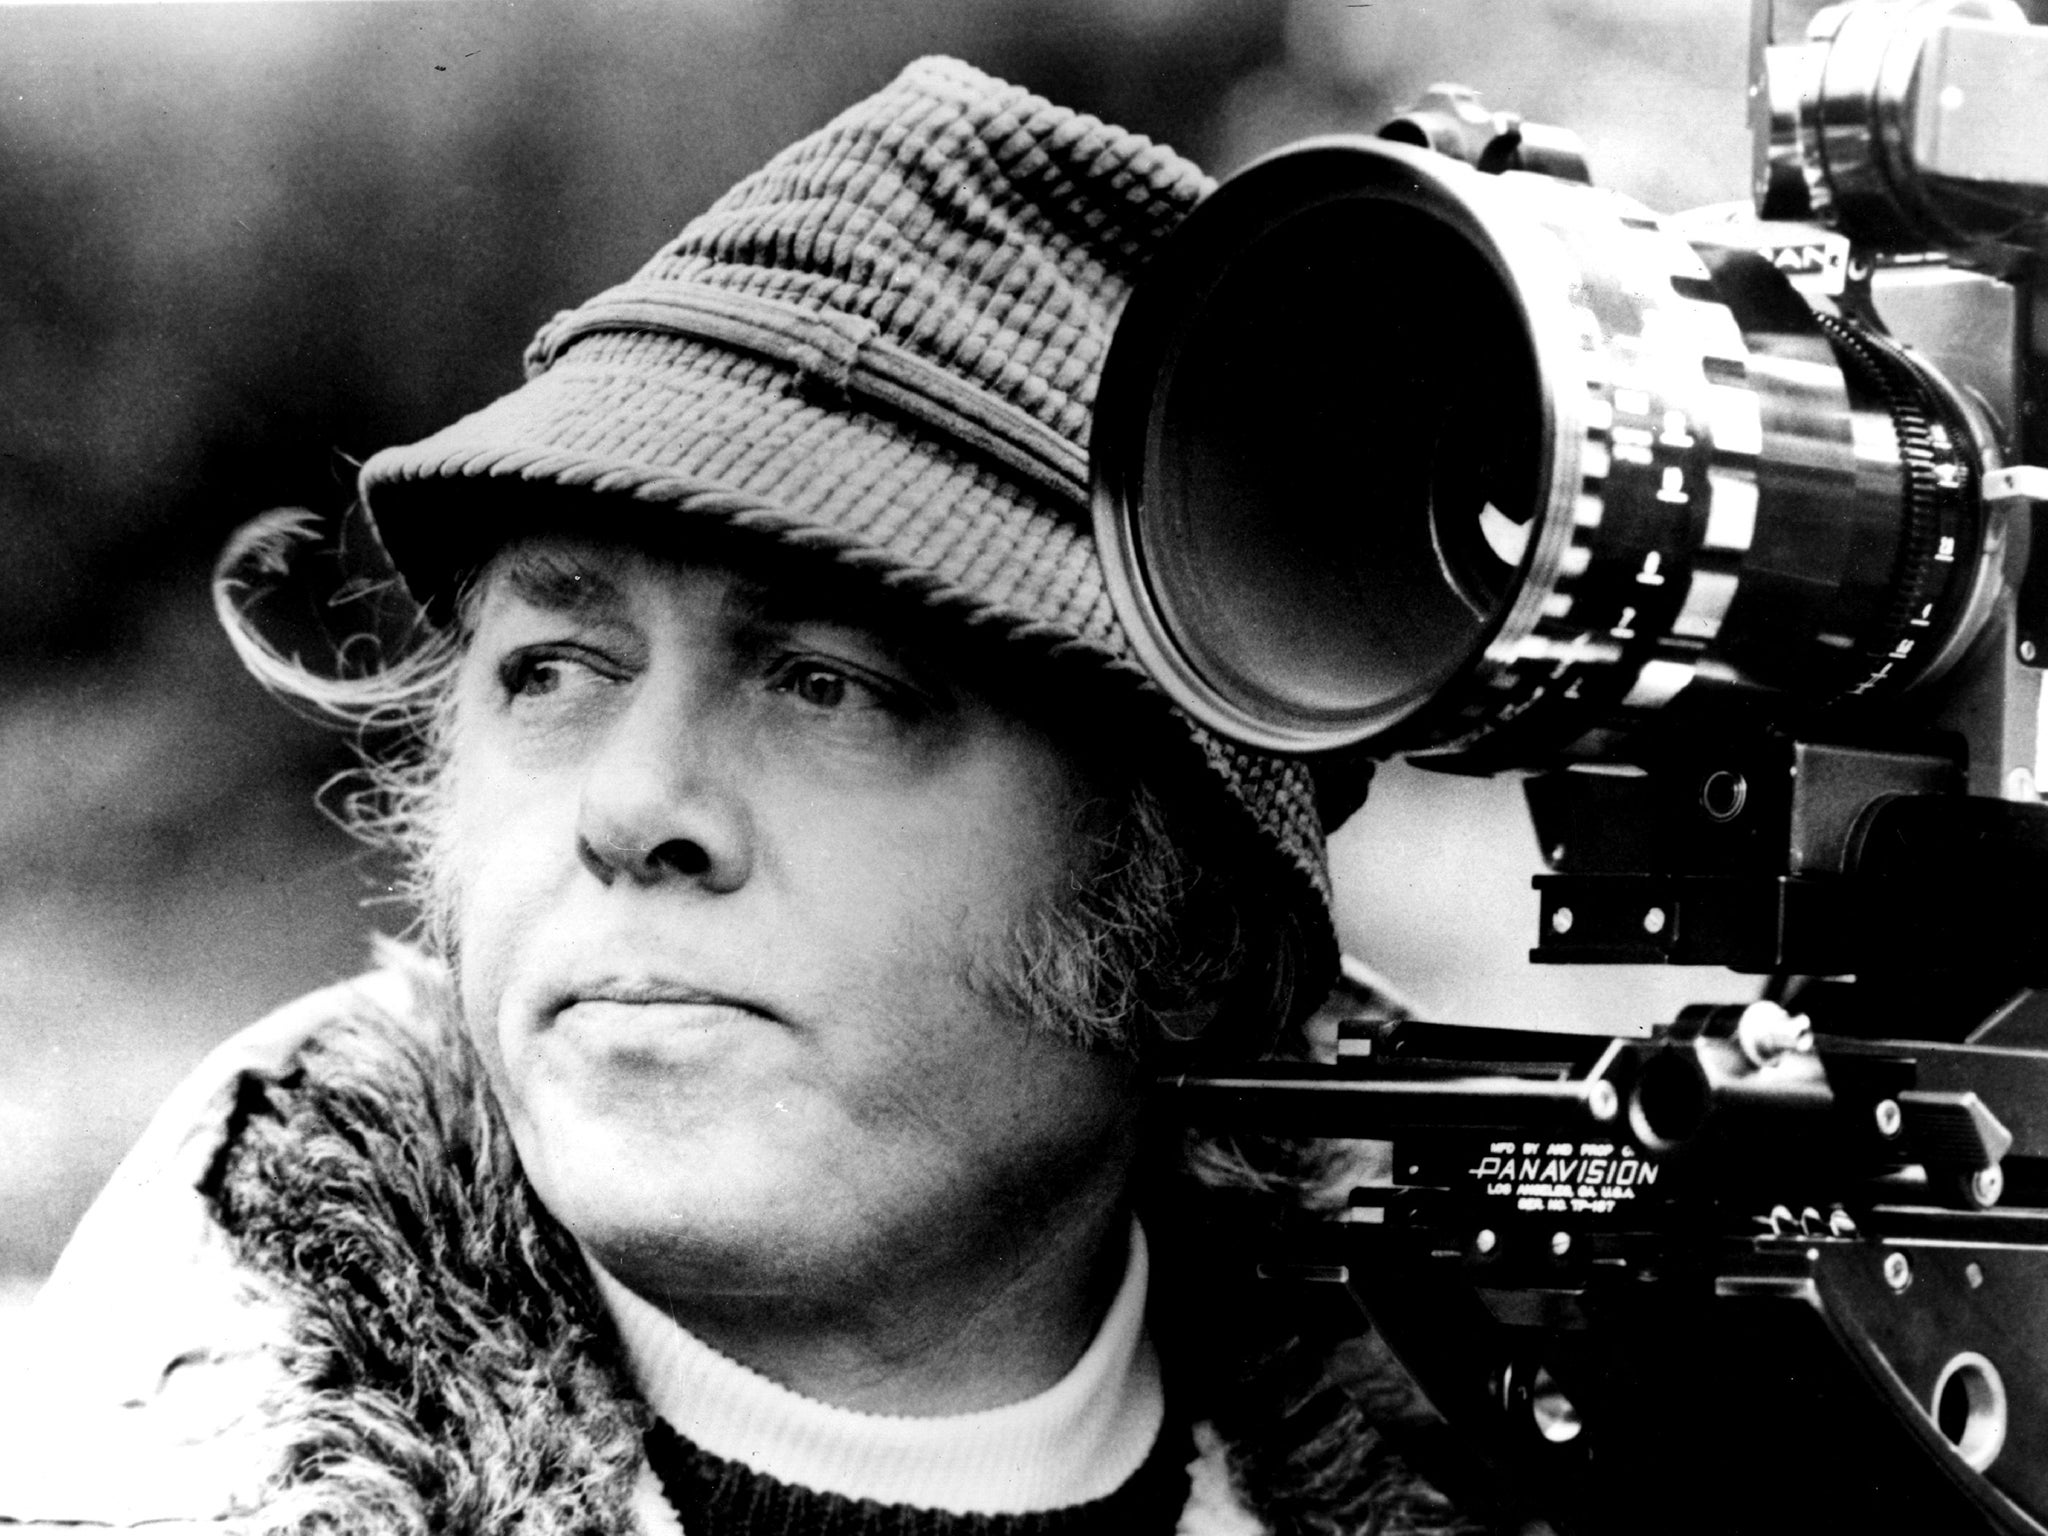 richard attenborough funeralrichard attenborough imdb, richard attenborough brother, richard attenborough young, richard attenborough david attenborough, richard attenborough iplayer, richard attenborough death, richard attenborough films, richard attenborough gandhi, richard attenborough jurassic world, richard attenborough gandhi full movie, richard attenborough funeral, richard attenborough net worth, richard attenborough tsunami, richard attenborough cause of death, richard attenborough great escape, richard attenborough centre, richard attenborough daughter, richard attenborough oscar, richard attenborough chelsea, richard attenborough films list